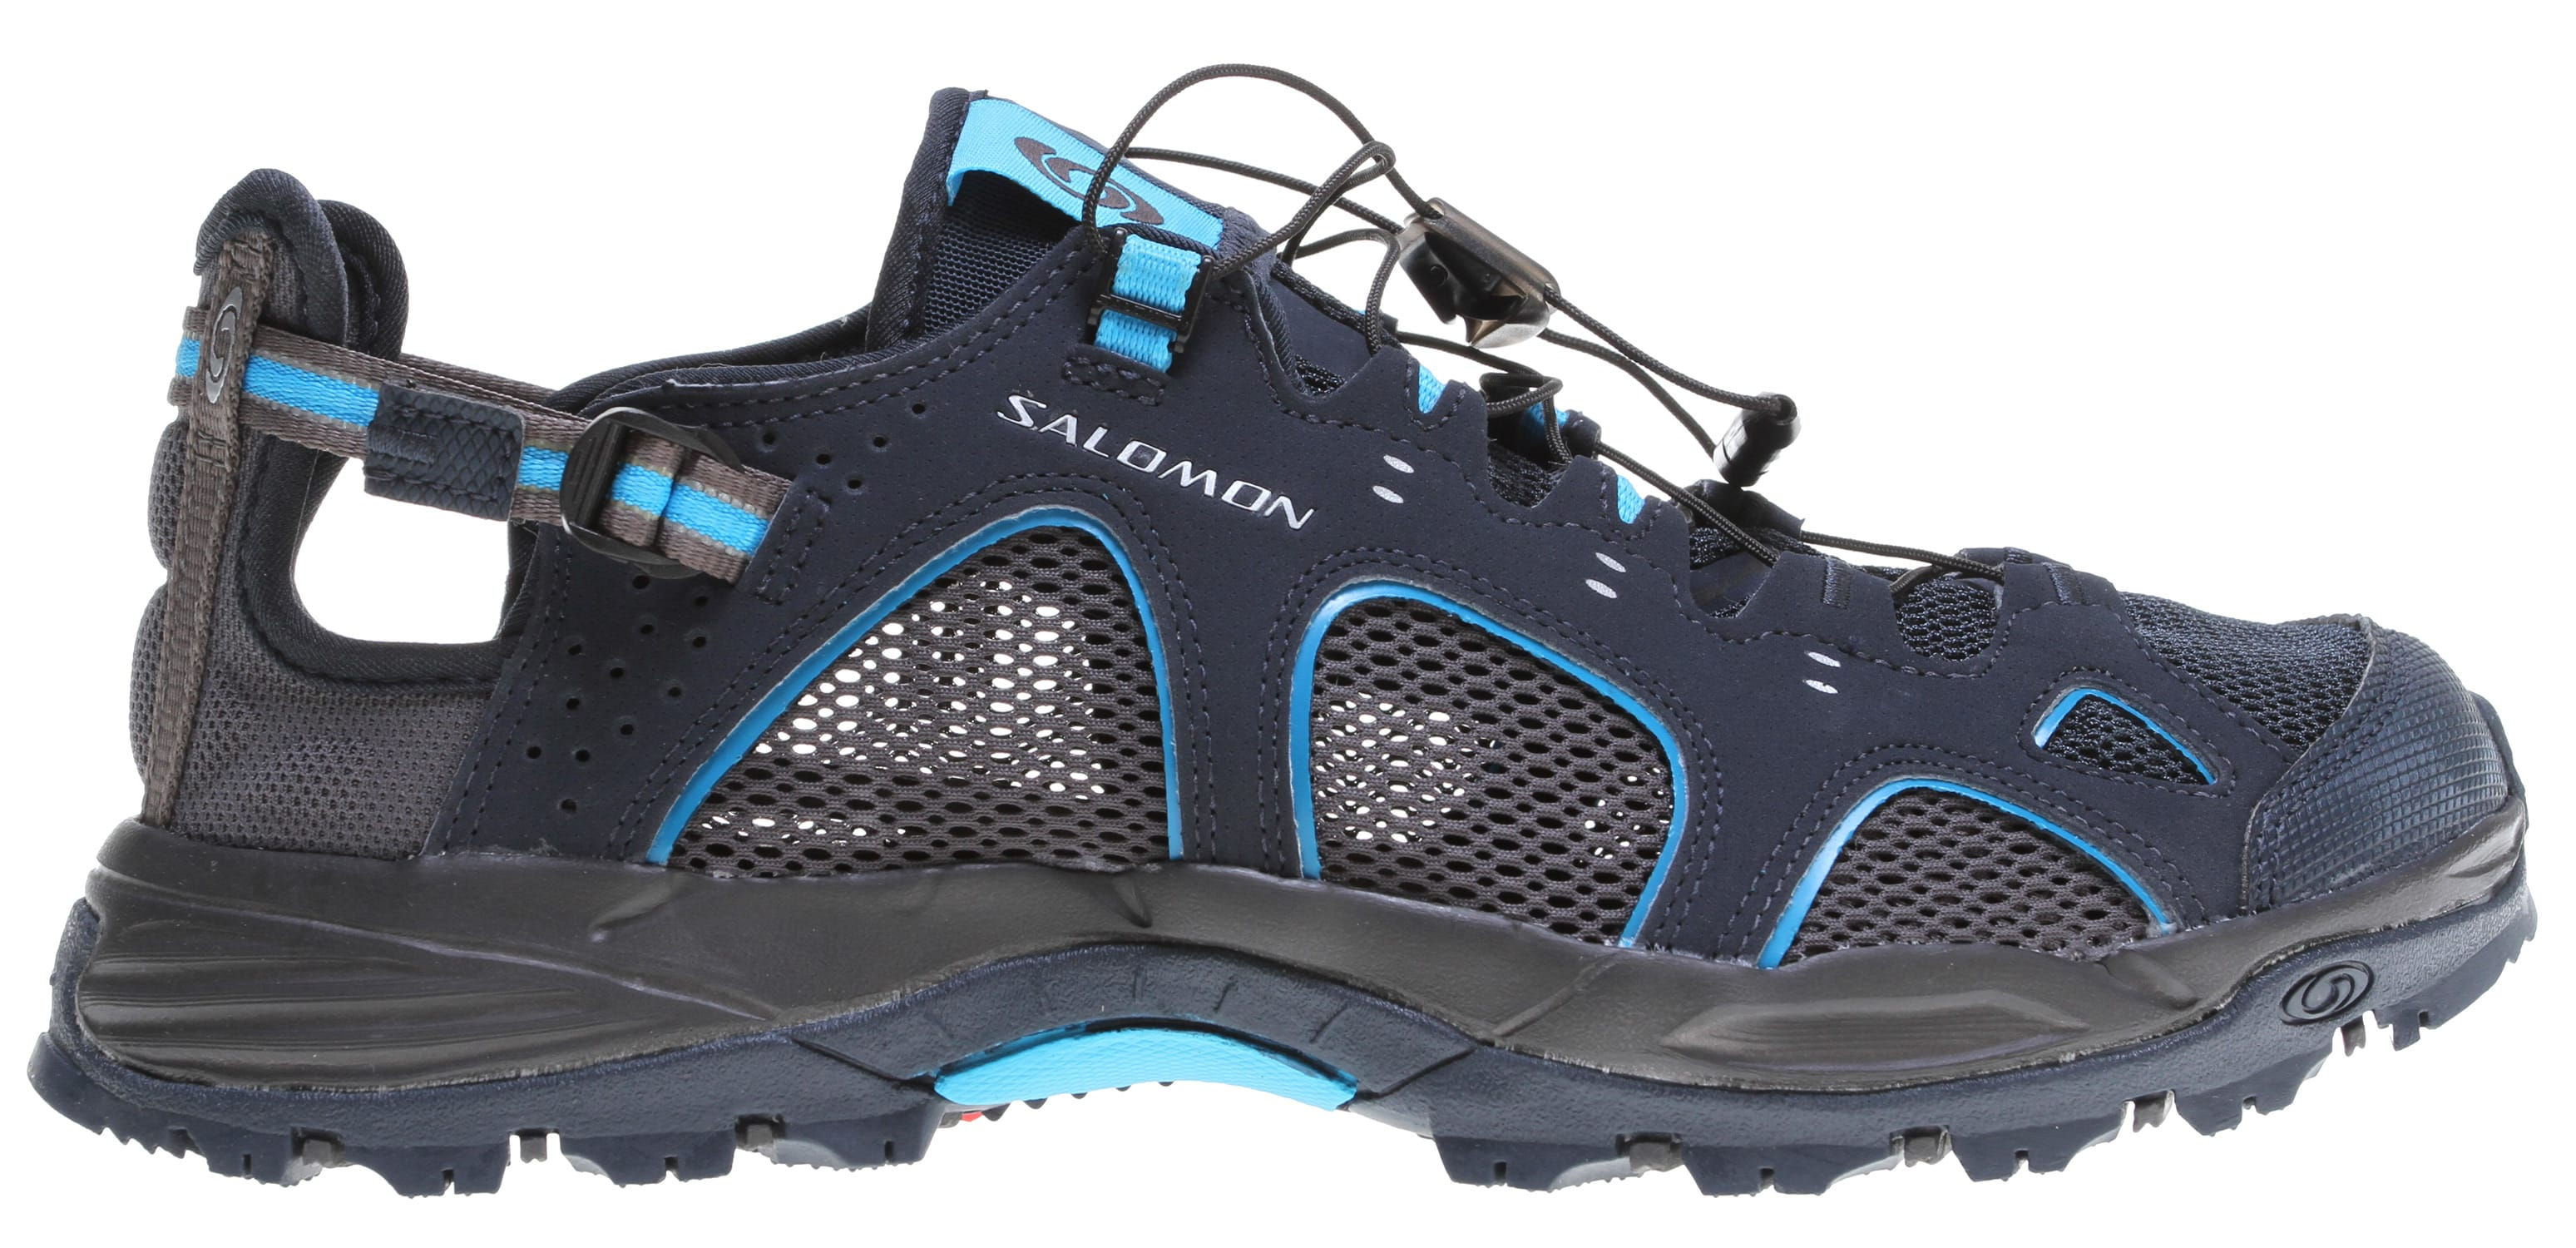 e0f99174ac68 Salomon Techamphibian 3 Water Shoes - thumbnail 1